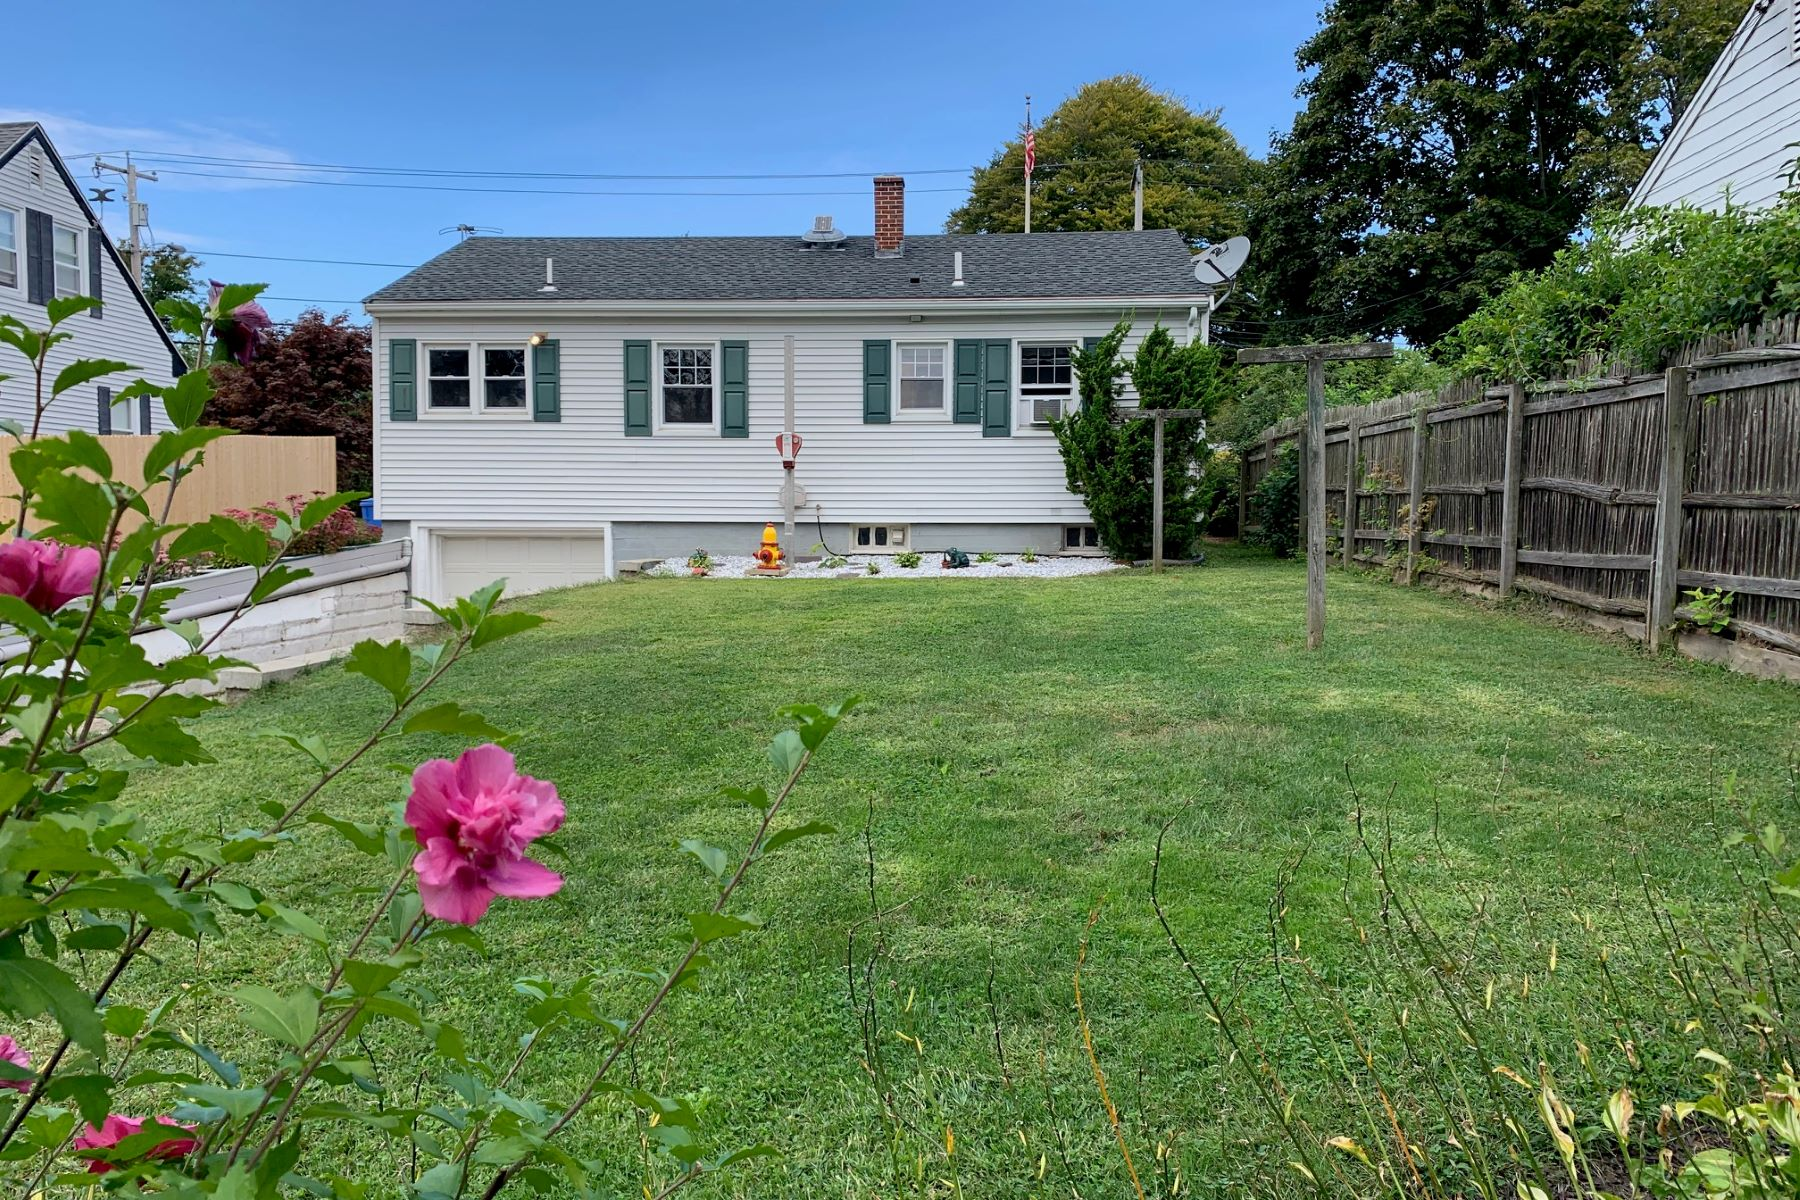 Additional photo for property listing at Middletown Cottage 115 Miantonomi Avenue Middletown, Rhode Island 02842 United States